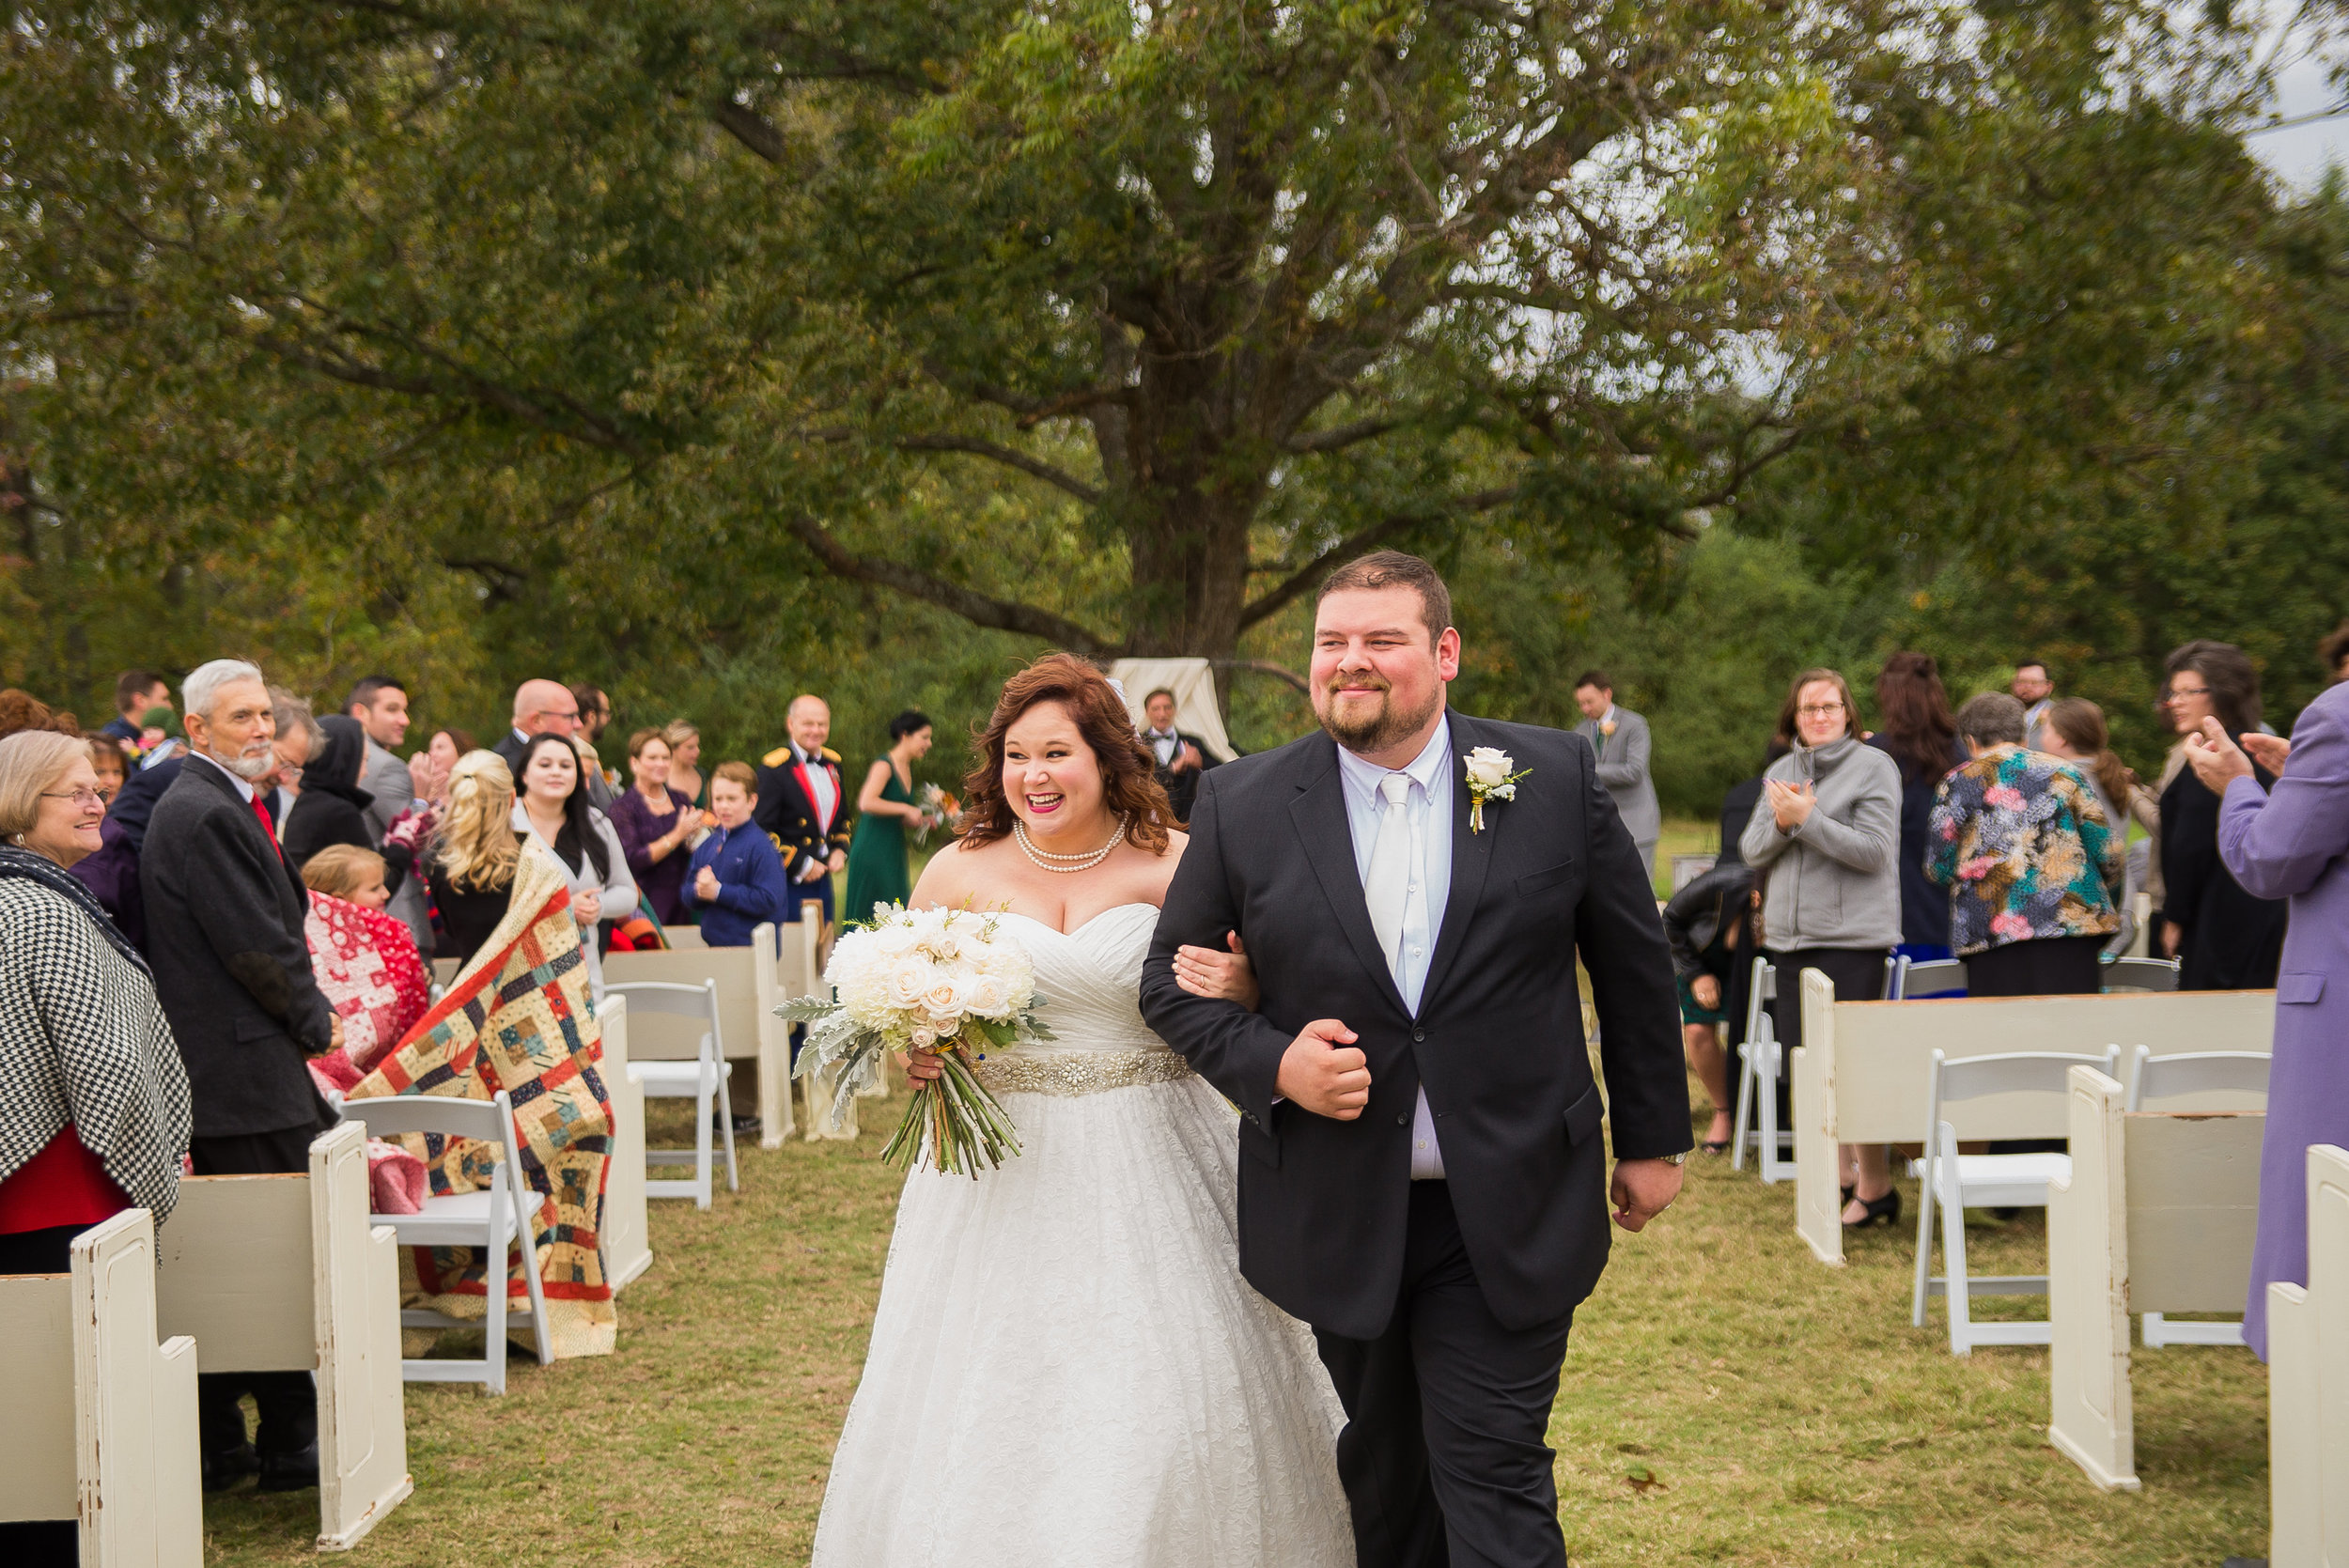 Outdoor wedding ceremony at Pepper Sprout Barn, picture by Morgan Corbett Photography